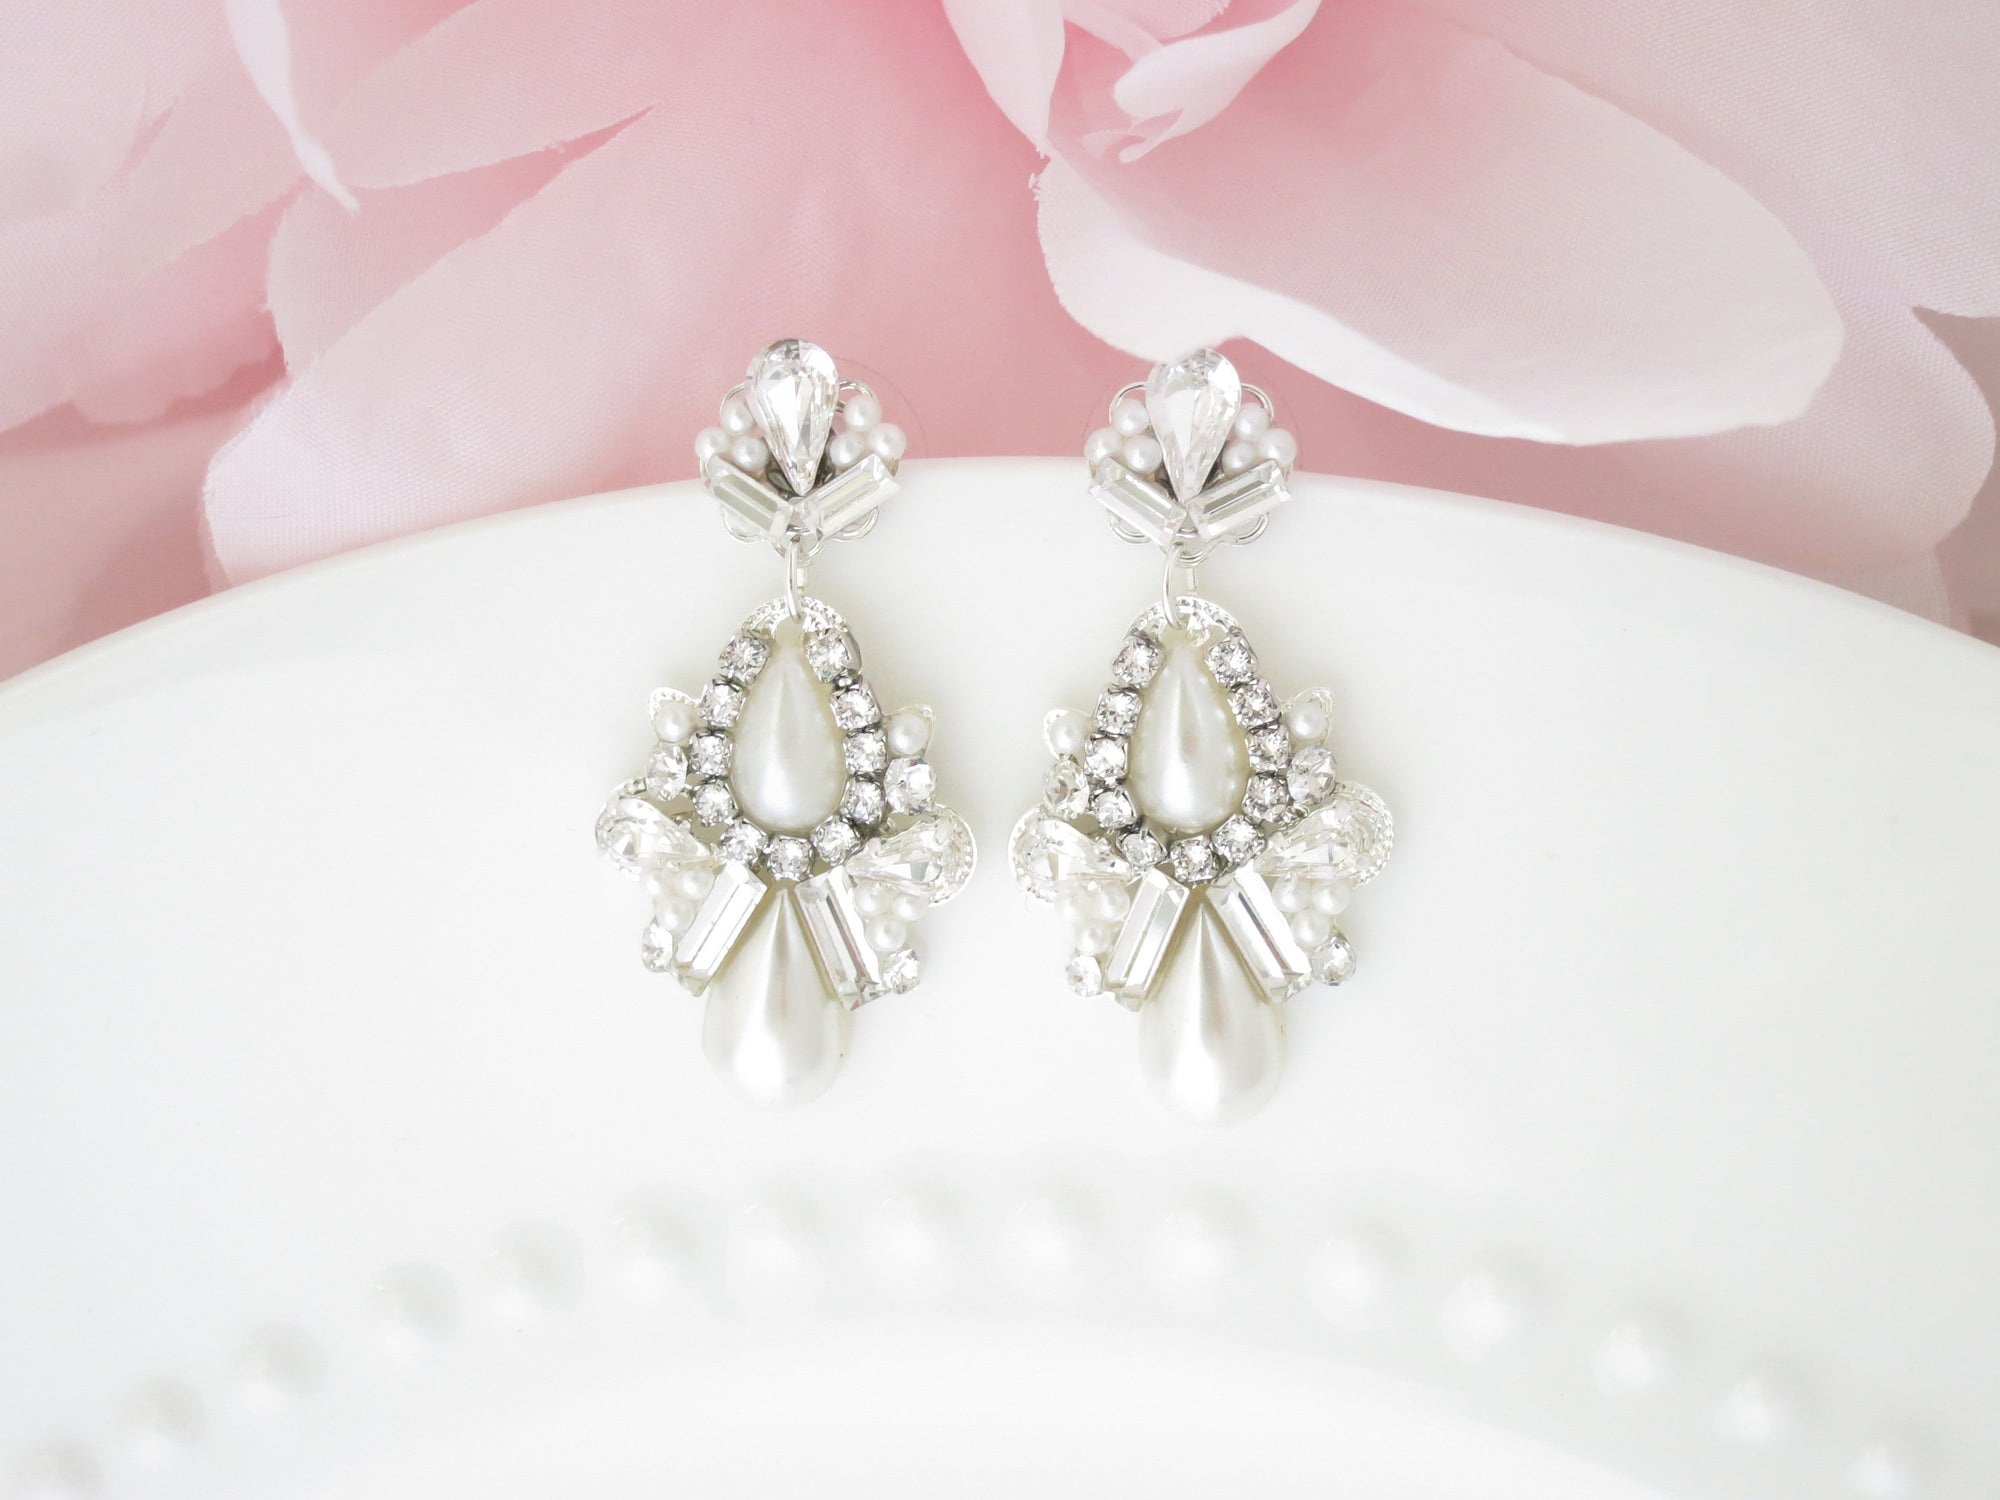 FRANCIS:  Dreamy Pearl Drop Earrings - BlingBaddaBoom - Minimalist, Vintage, Modern Wedding and Bridal Jewelry